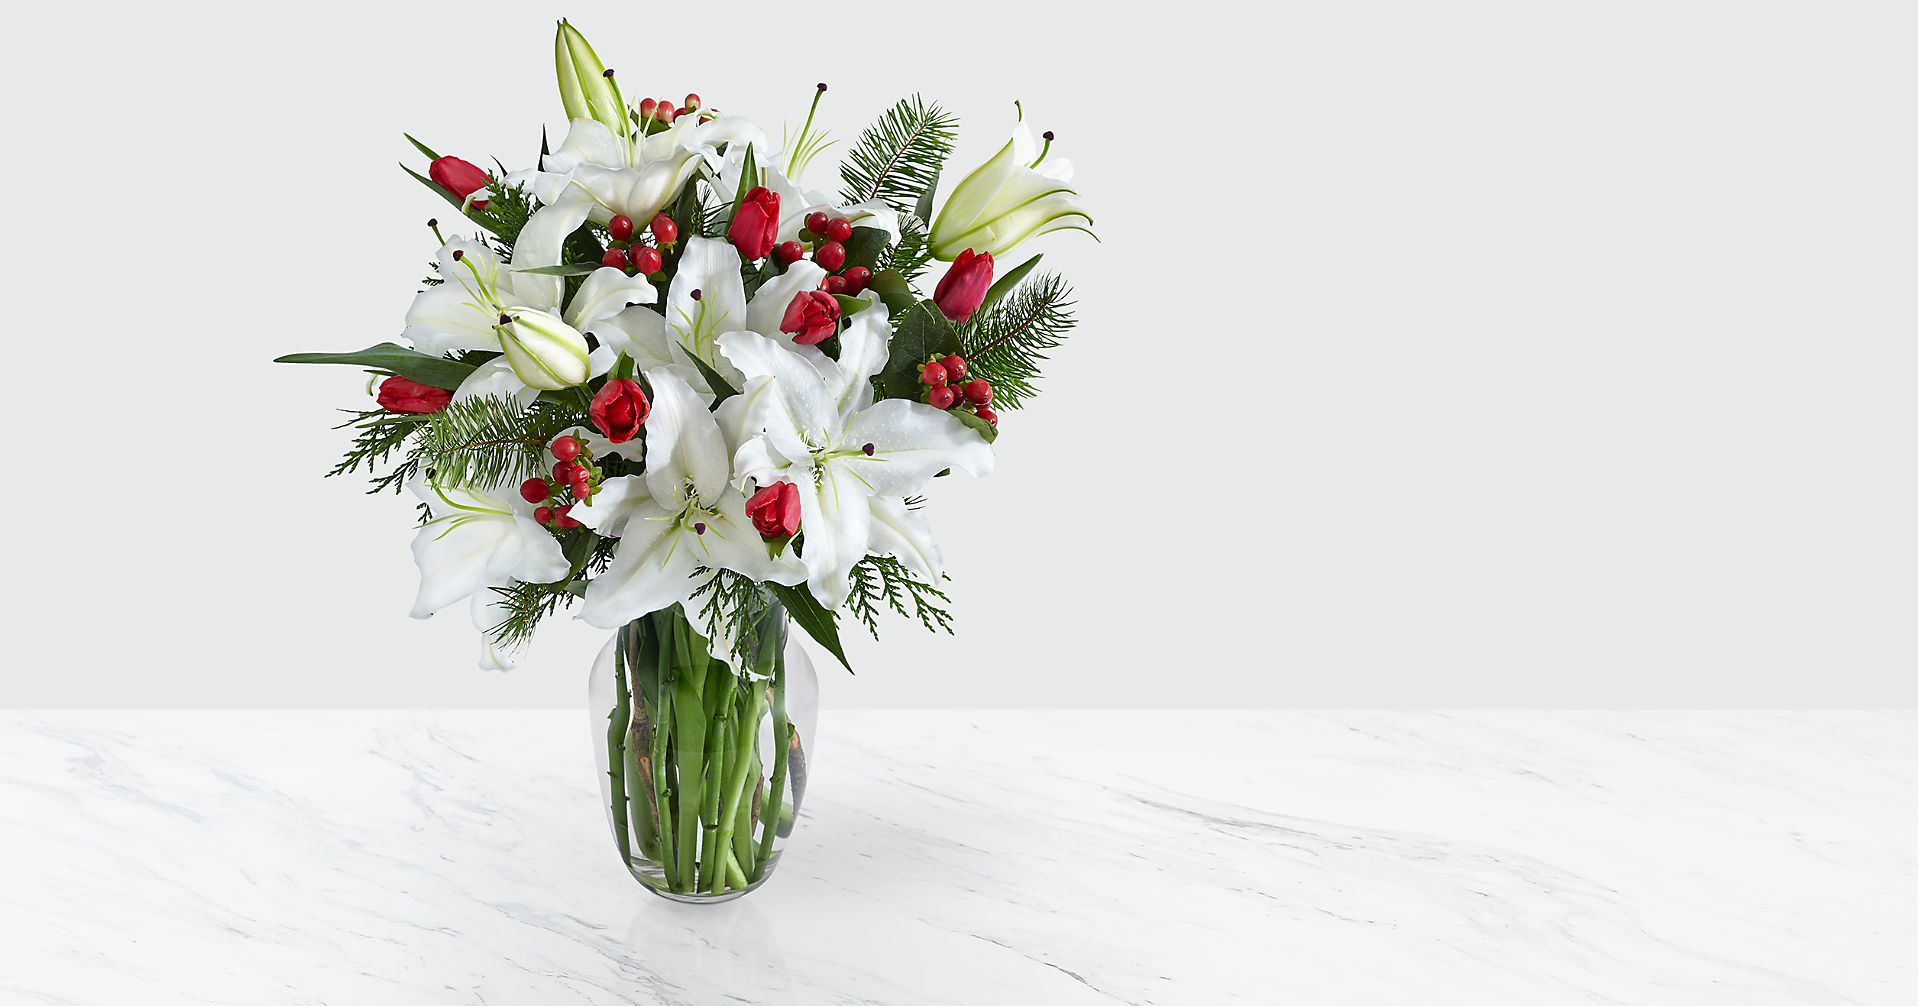 Christmas Bouquet - Image 2 Of 2